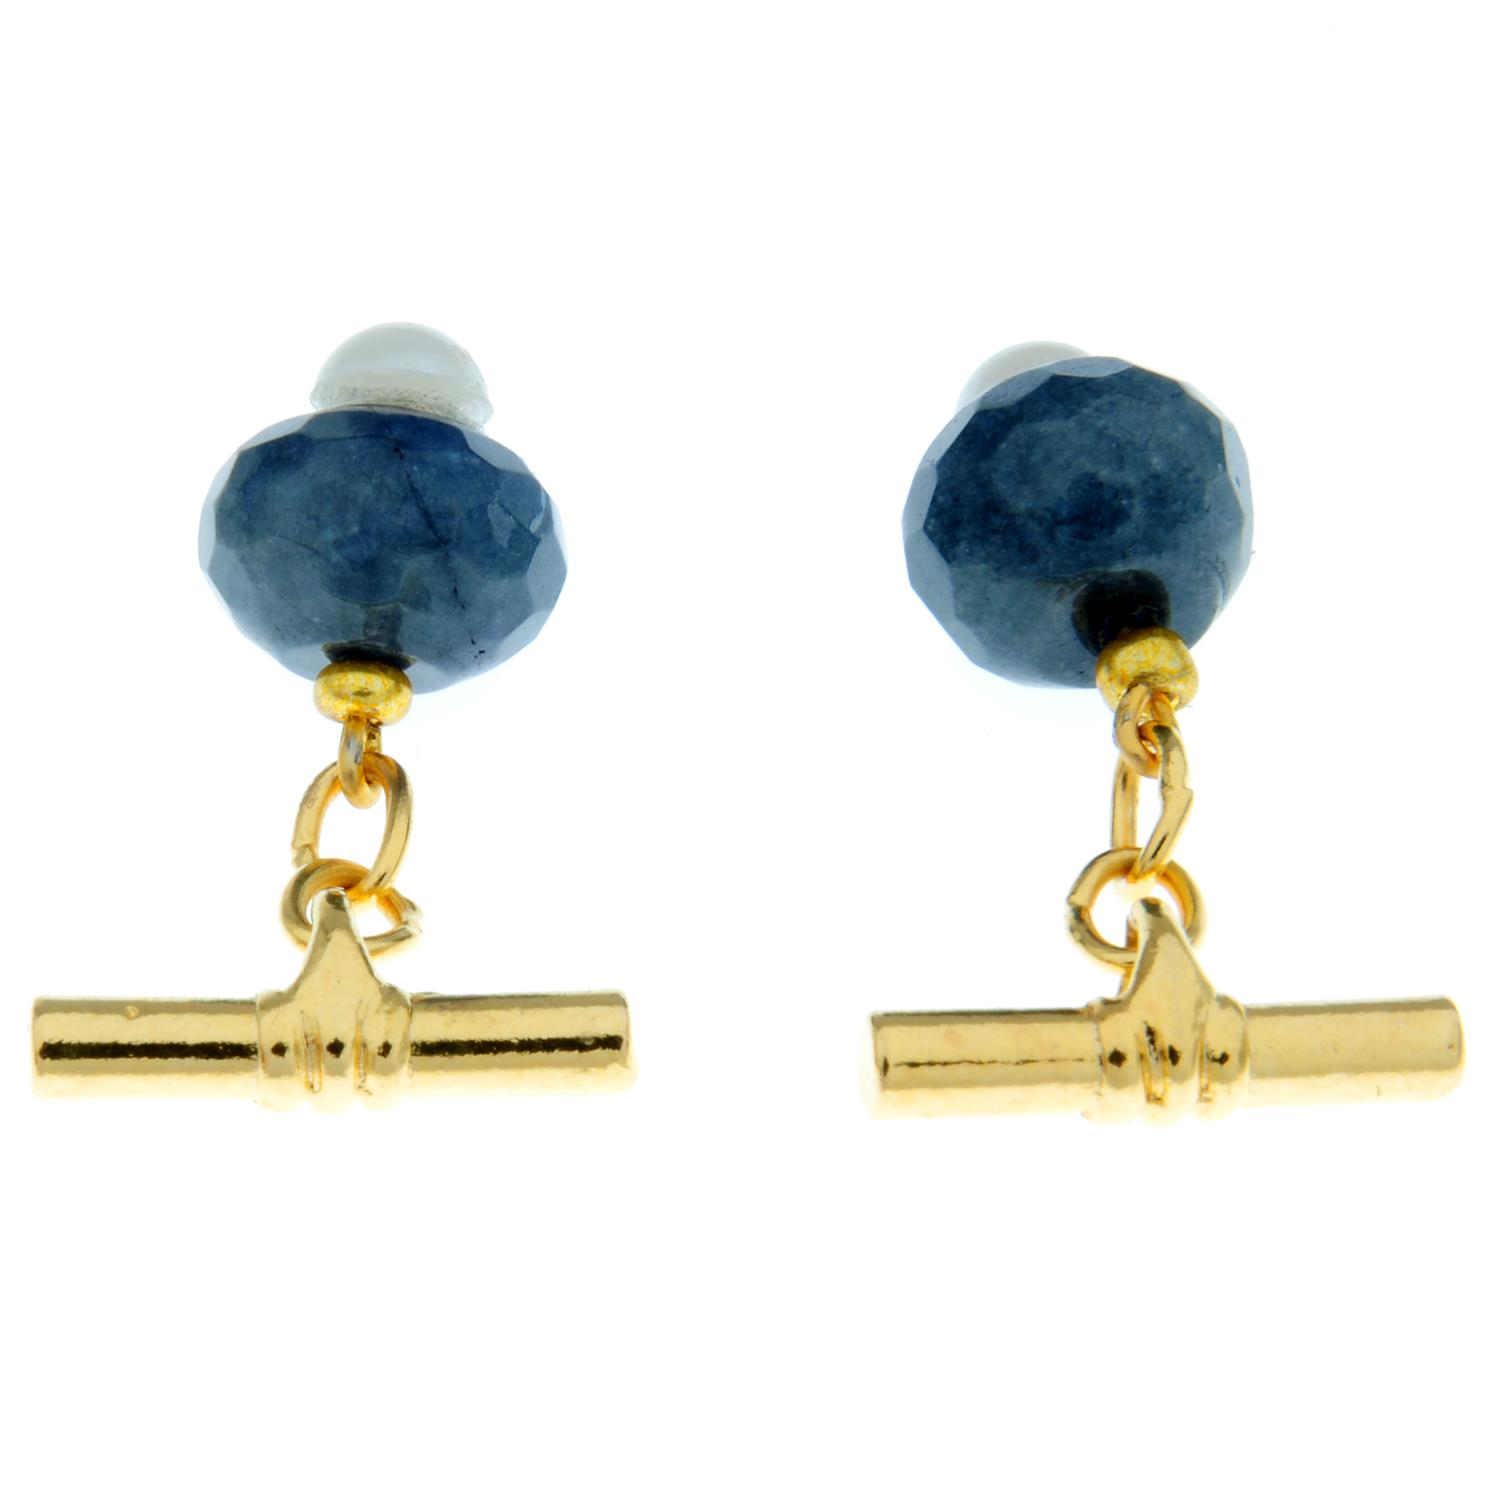 A pair of sapphire and imitation pearl cufflinks.Diameter of cufflink face 1.2cms. - Image 2 of 2